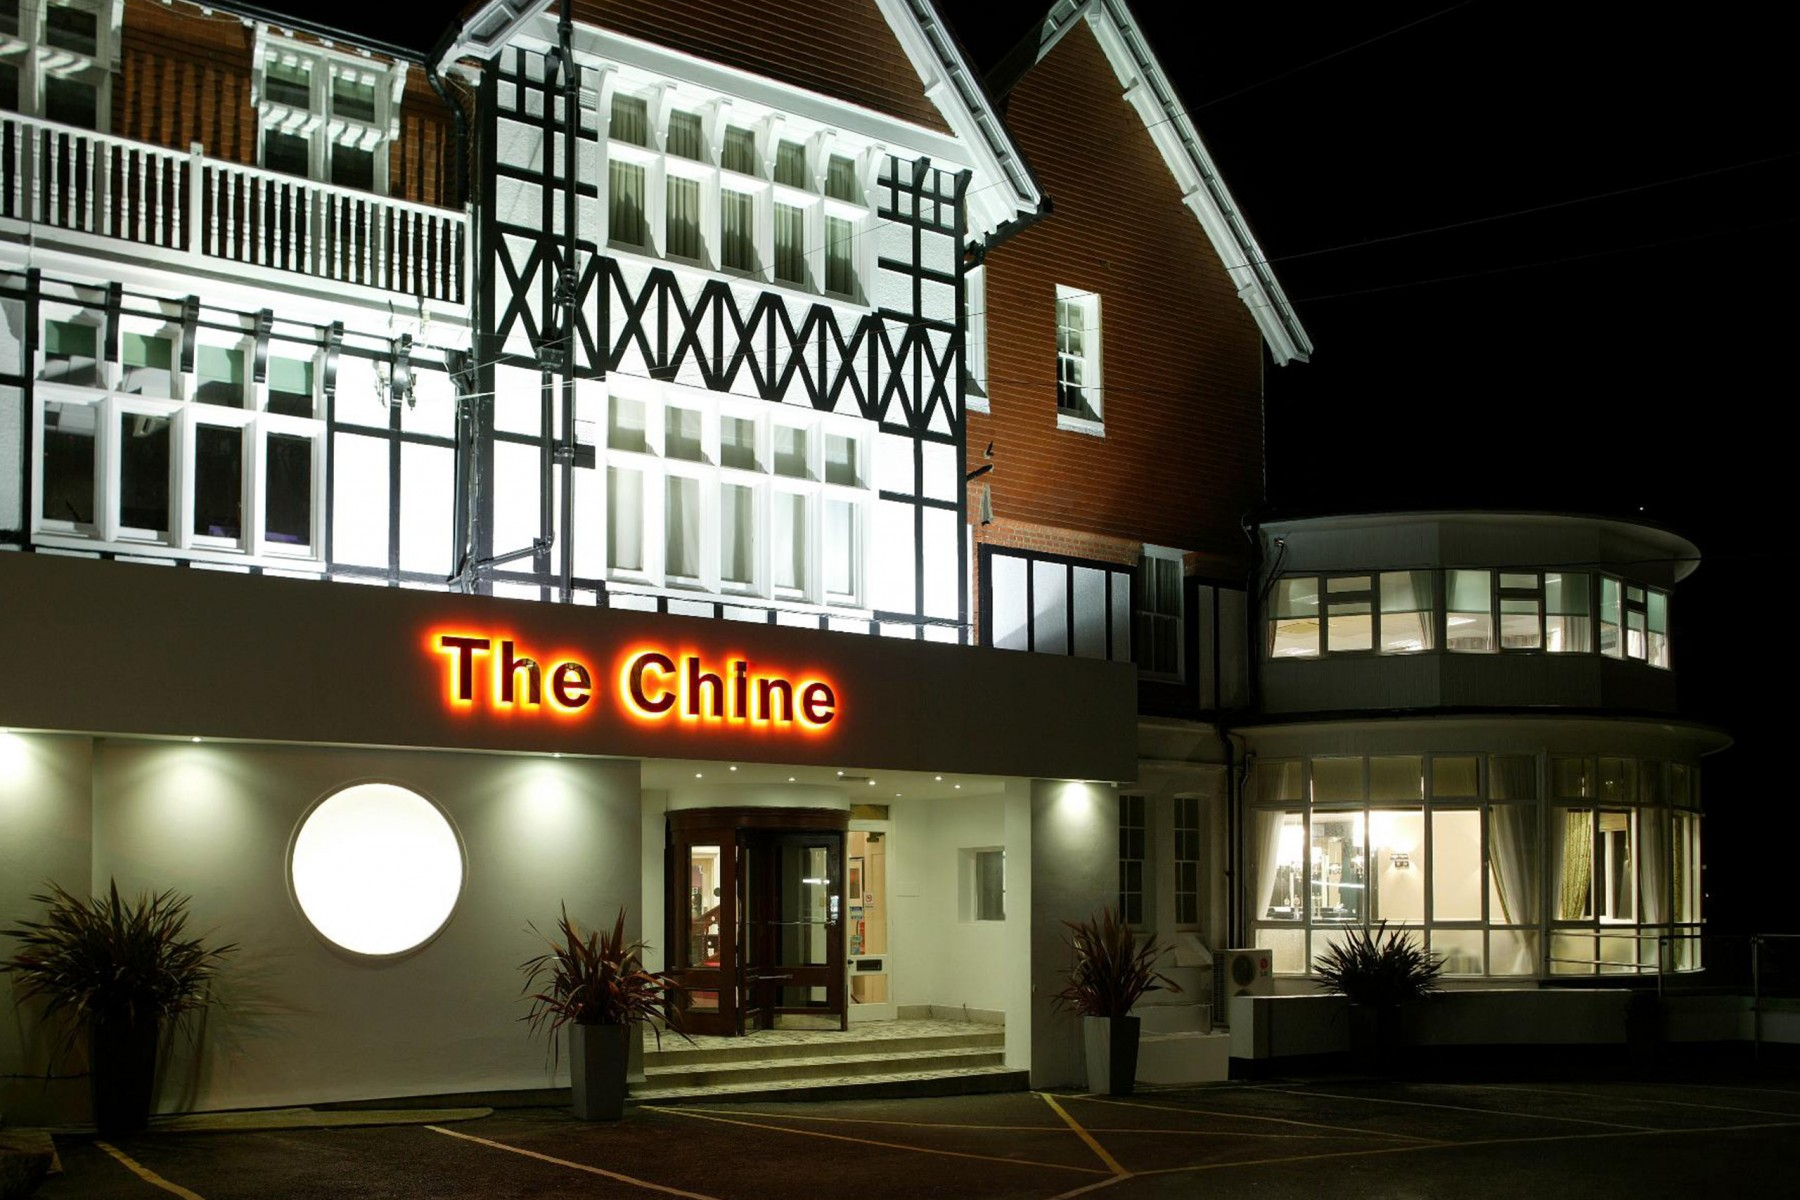 Image Gallery - The Chine Hotel, Bournemouth